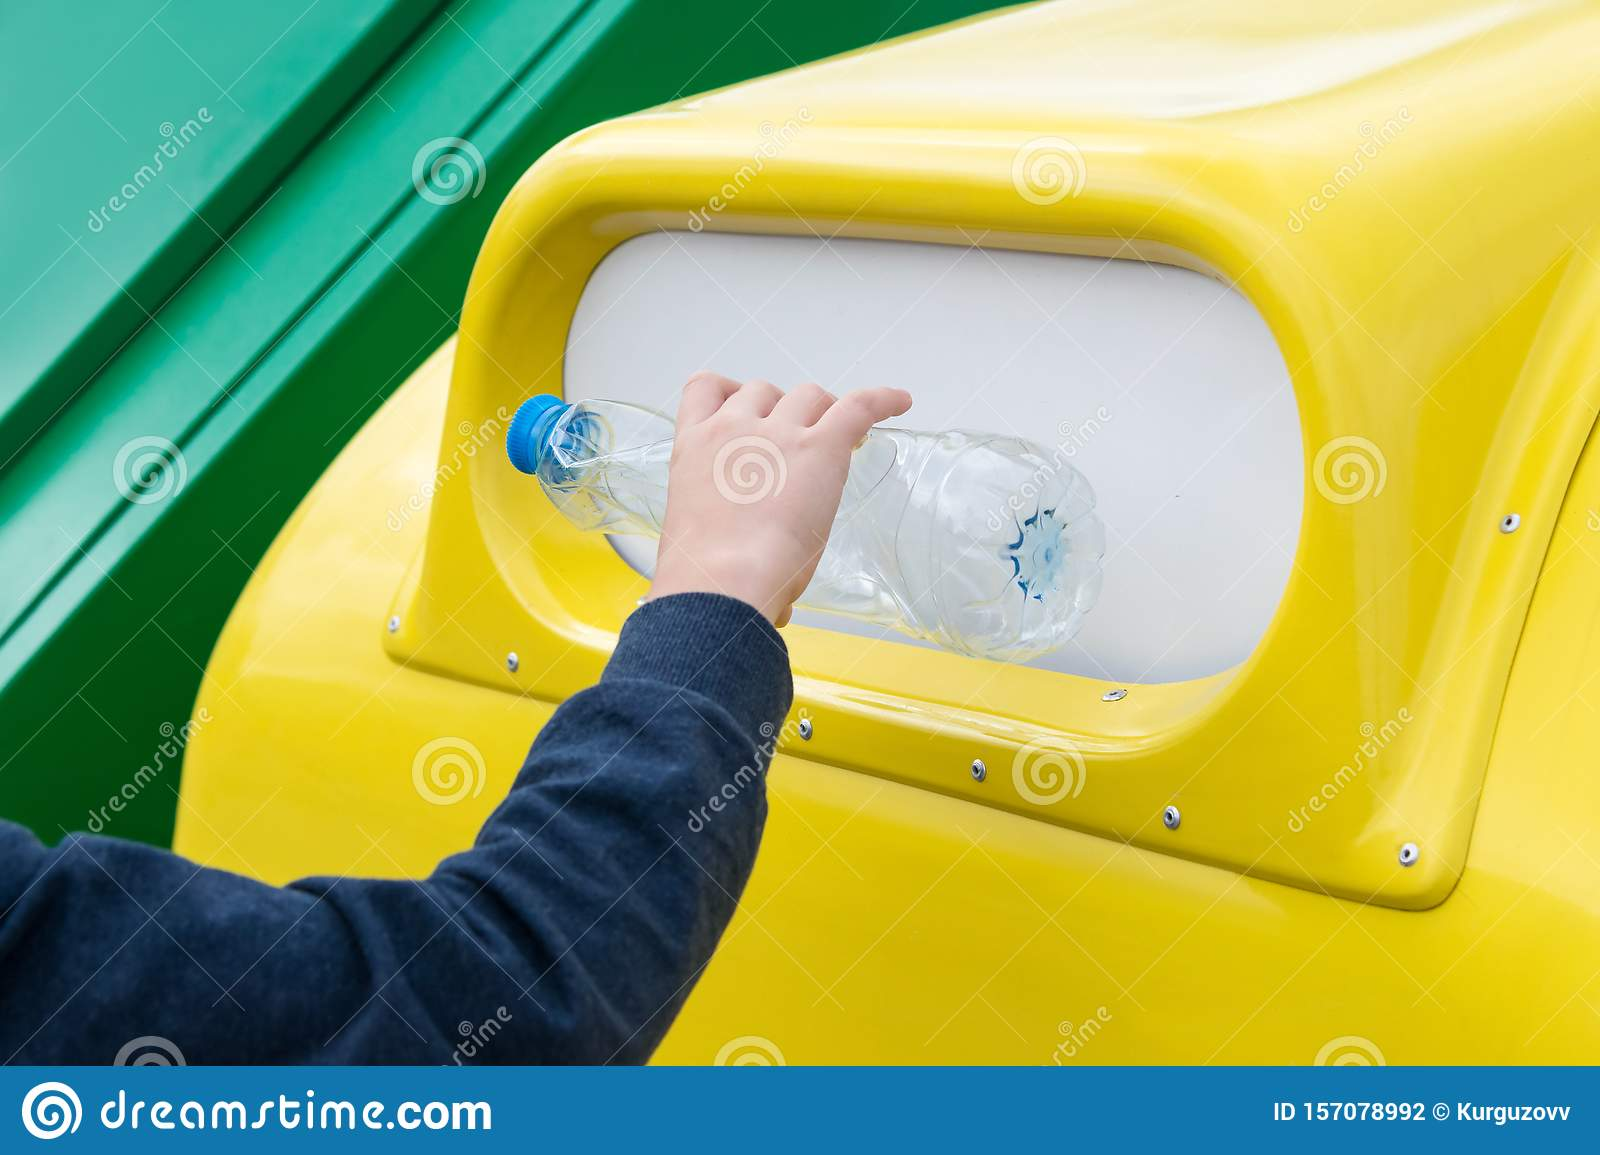 Close-up shot of a boy's hand throwing an empty plastic bottle into a separate garbage container